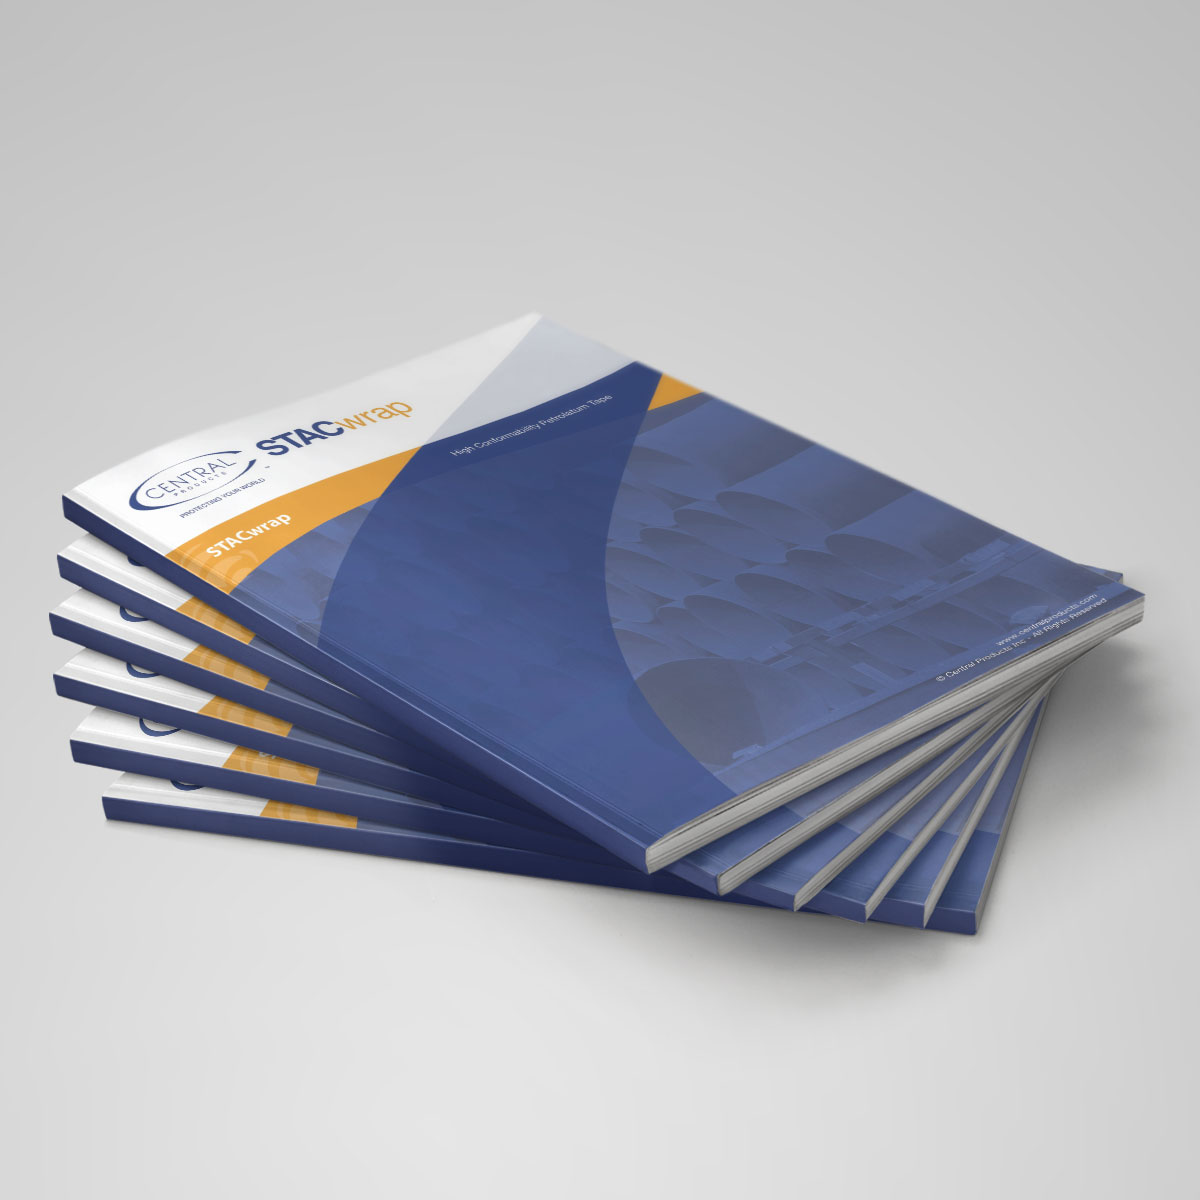 Central_Products_magazine_stack_mockup